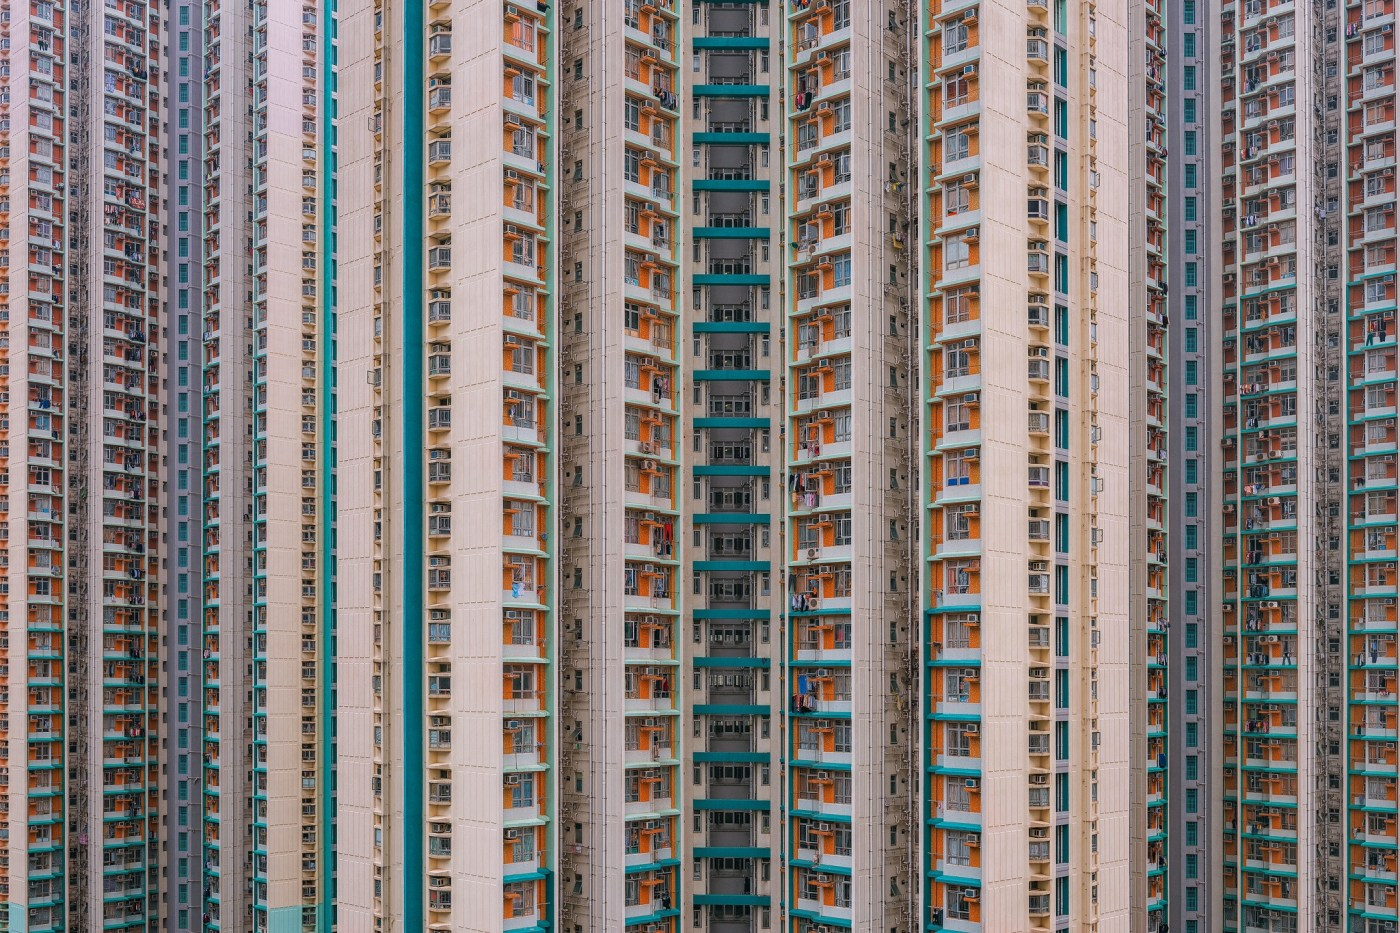 11 - Stacked Hong Kong